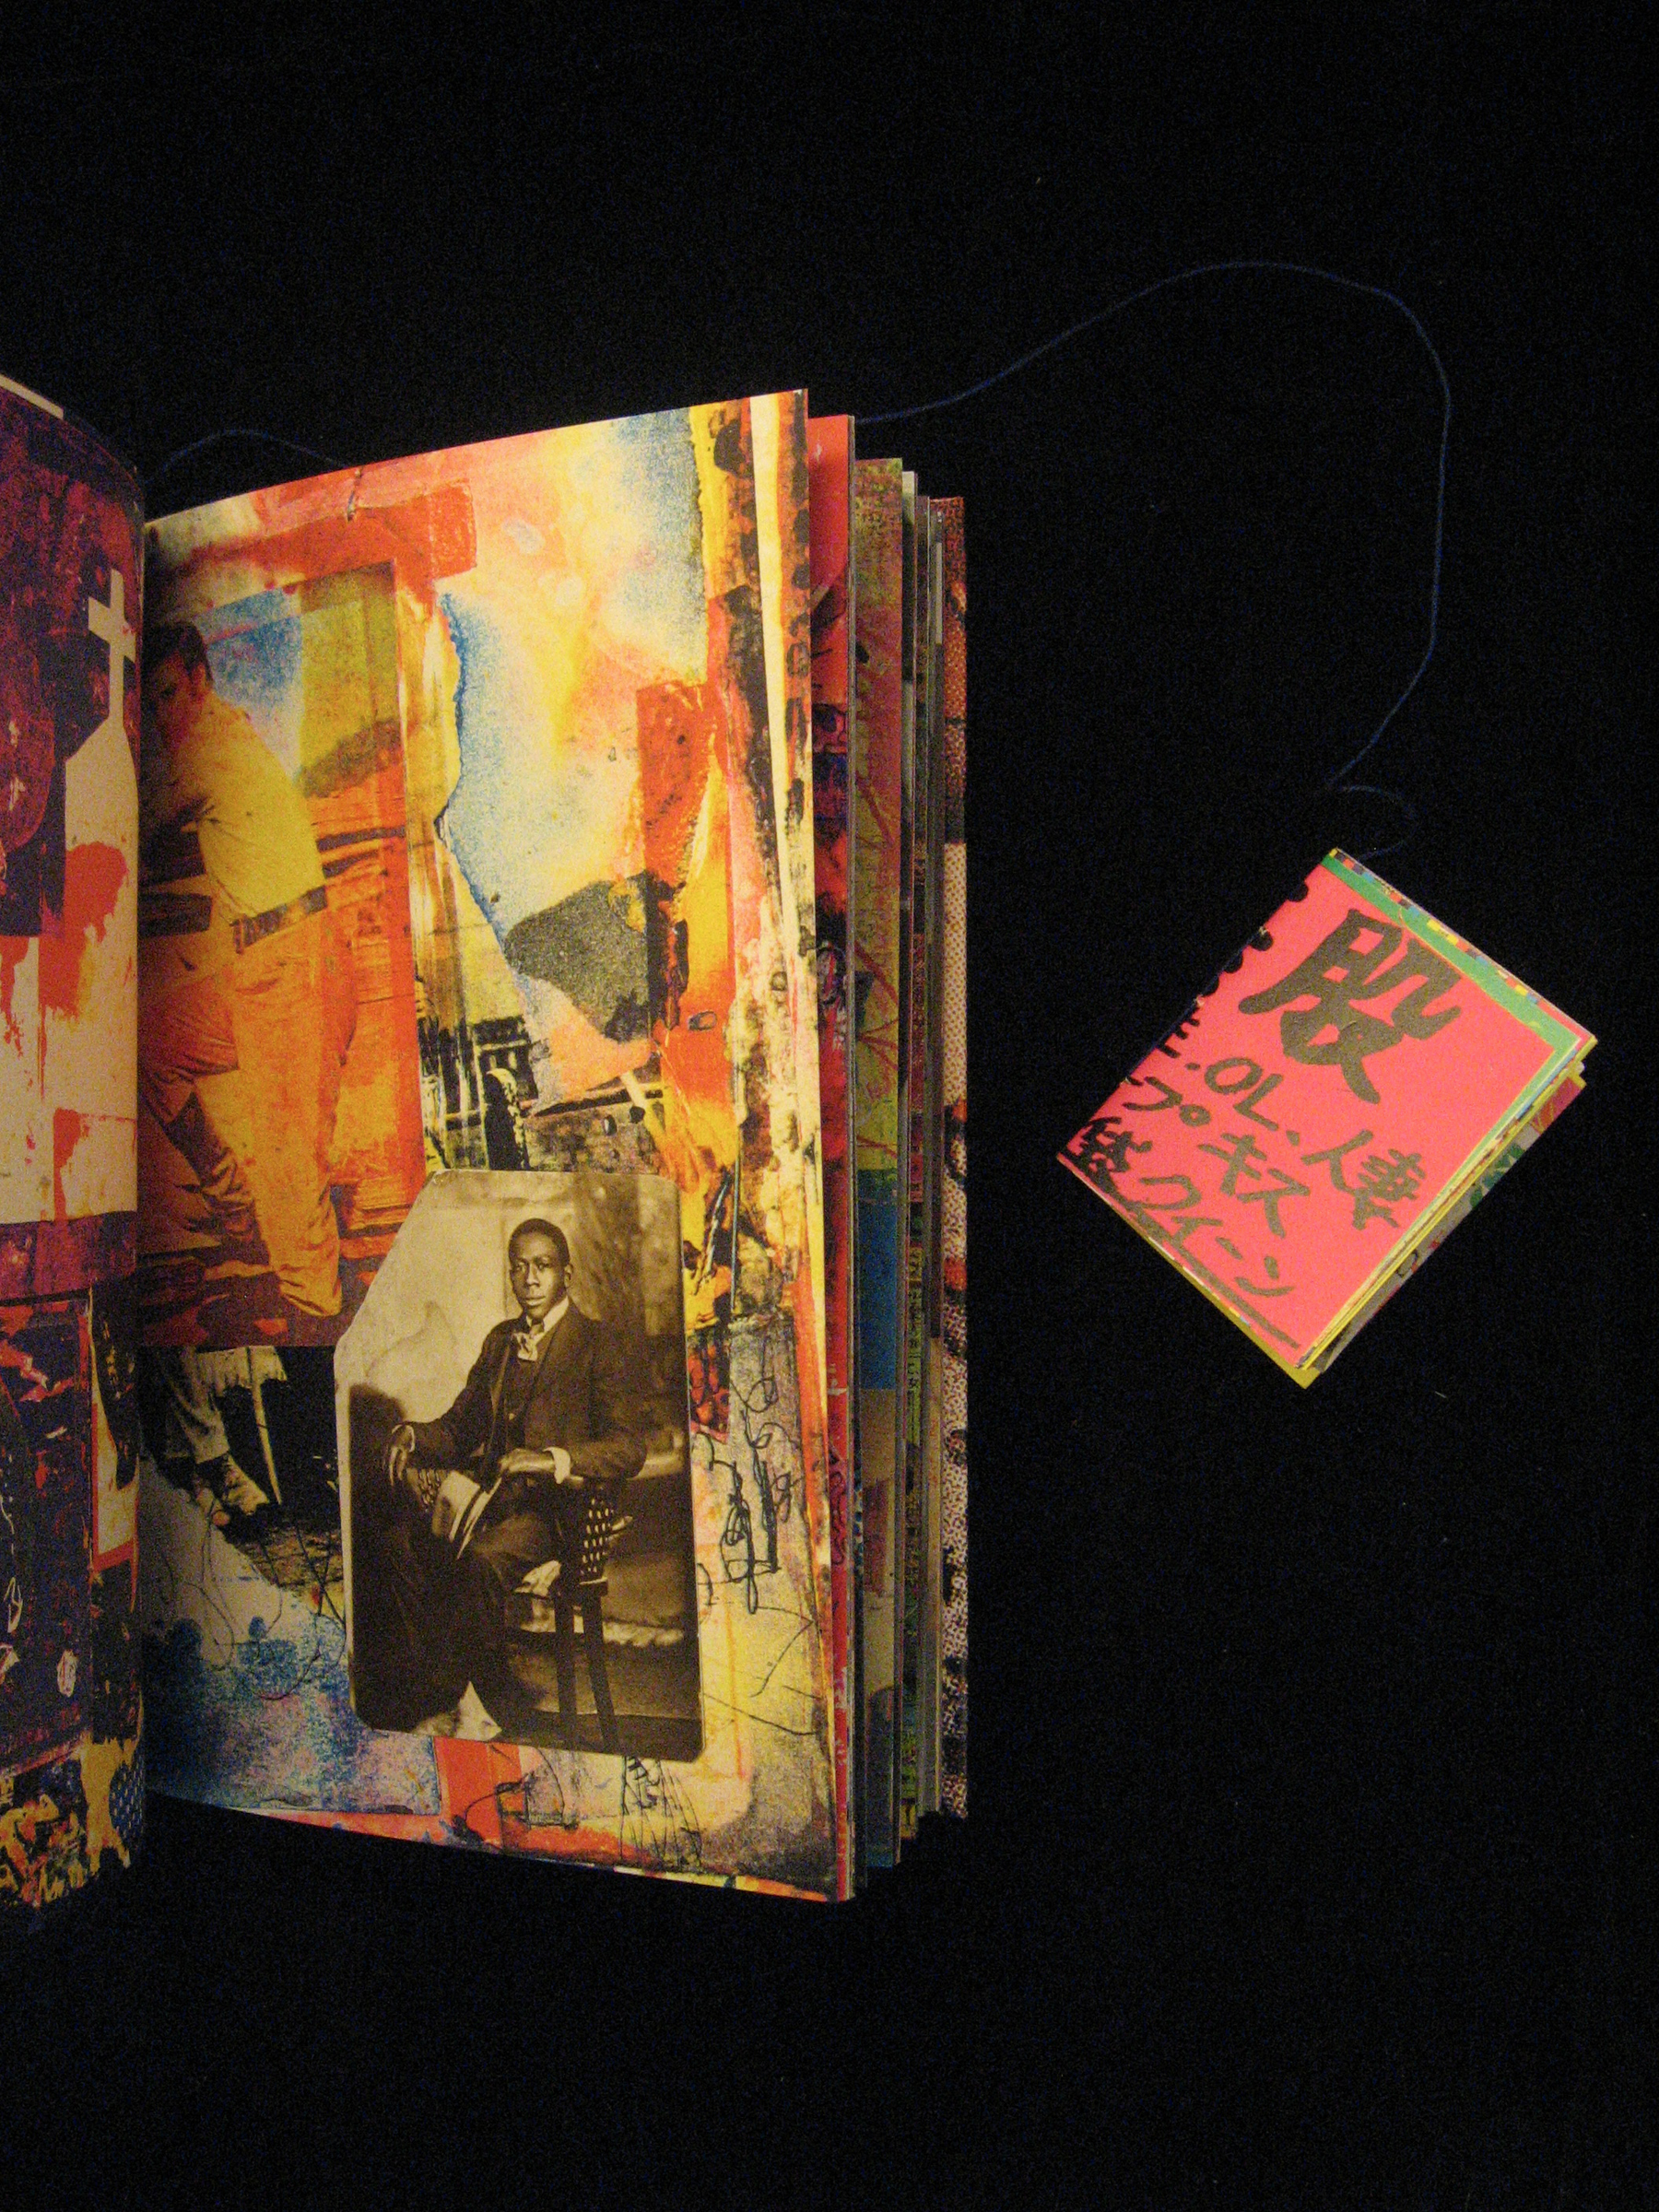 Page spread with colorful collage and a small, detached booklet.